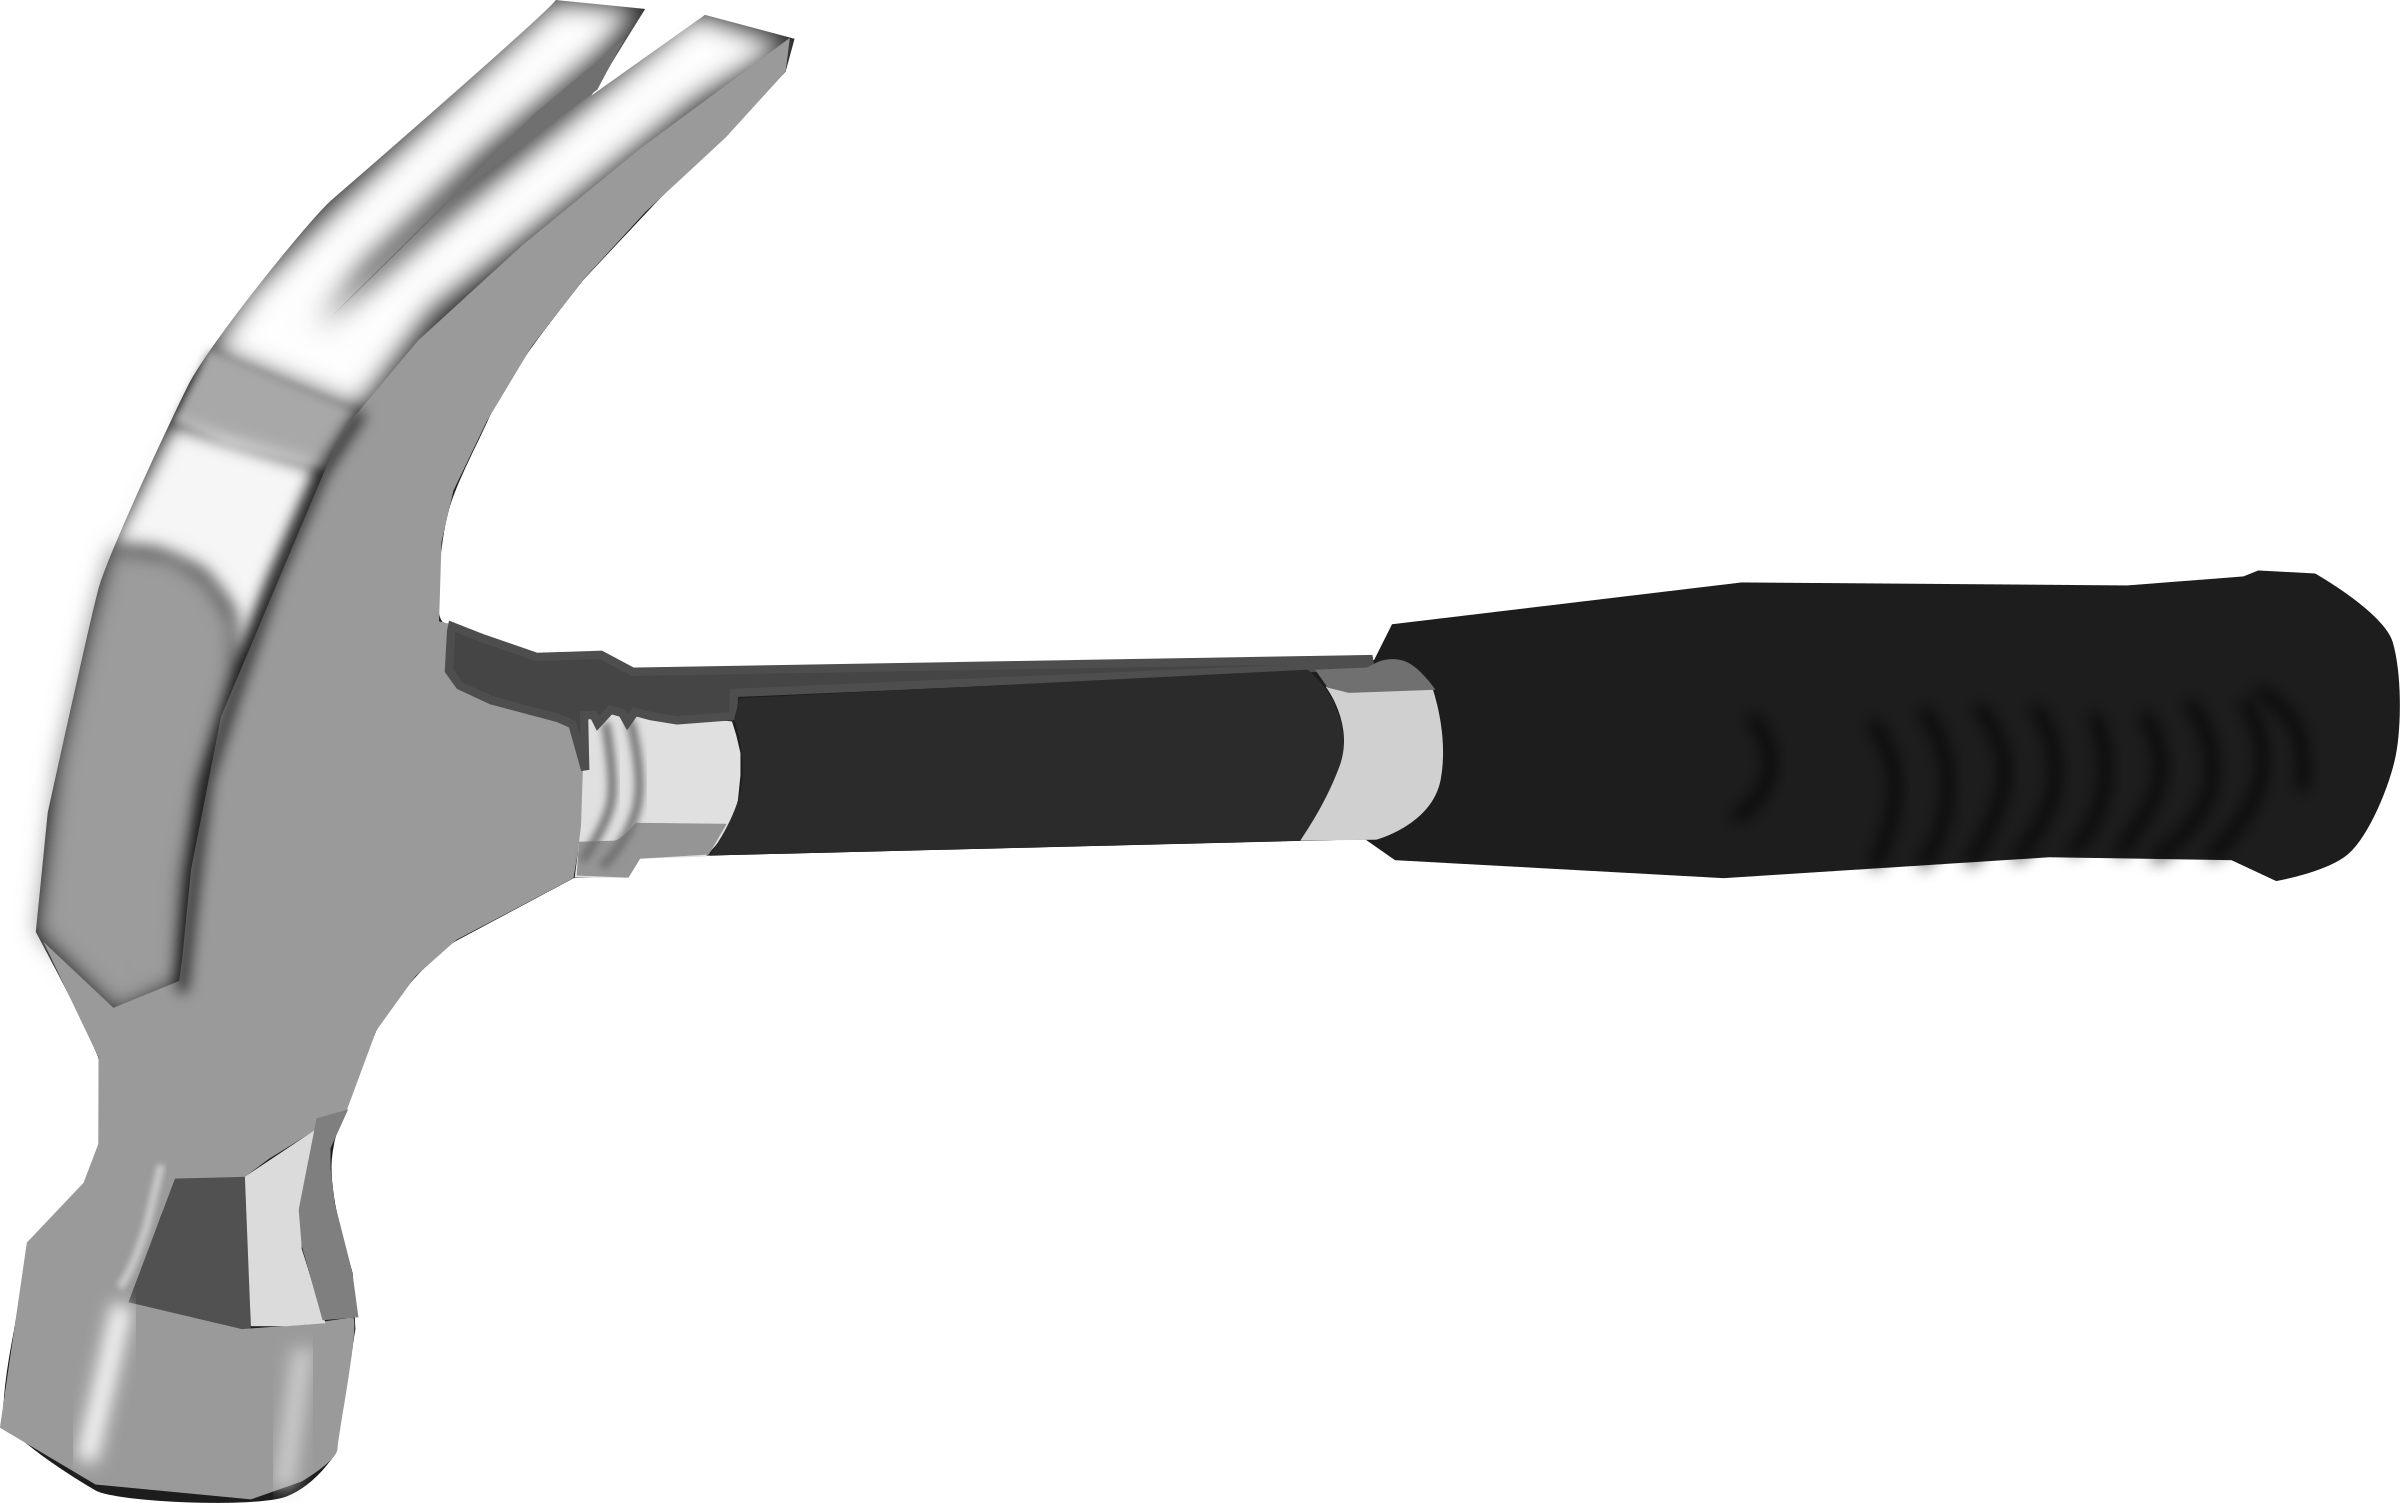 Clipart hammer hand. Big image png